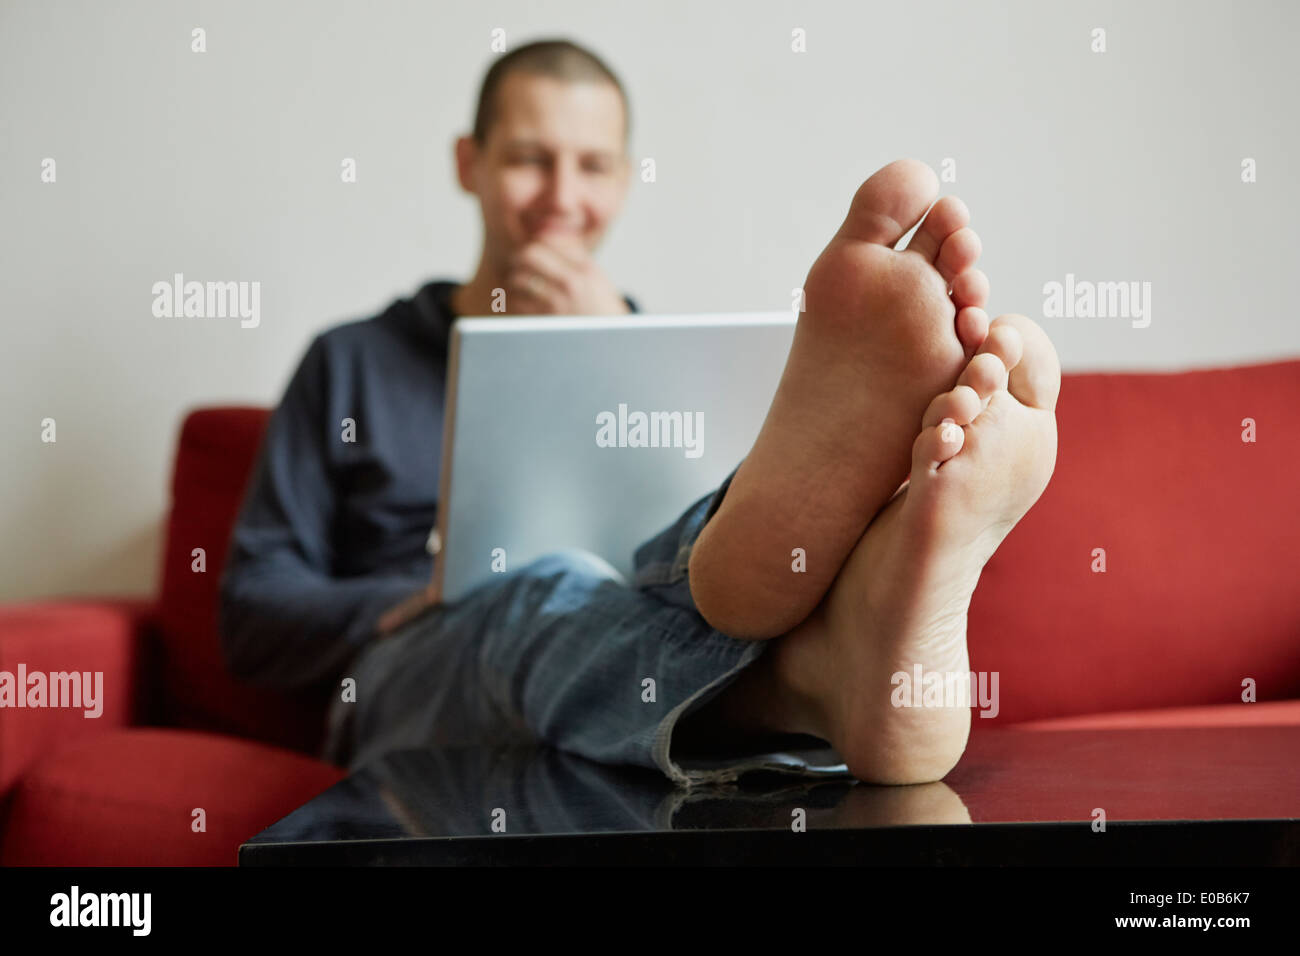 Mid adult man relaxing on sofa engrossed in laptop - Stock Image